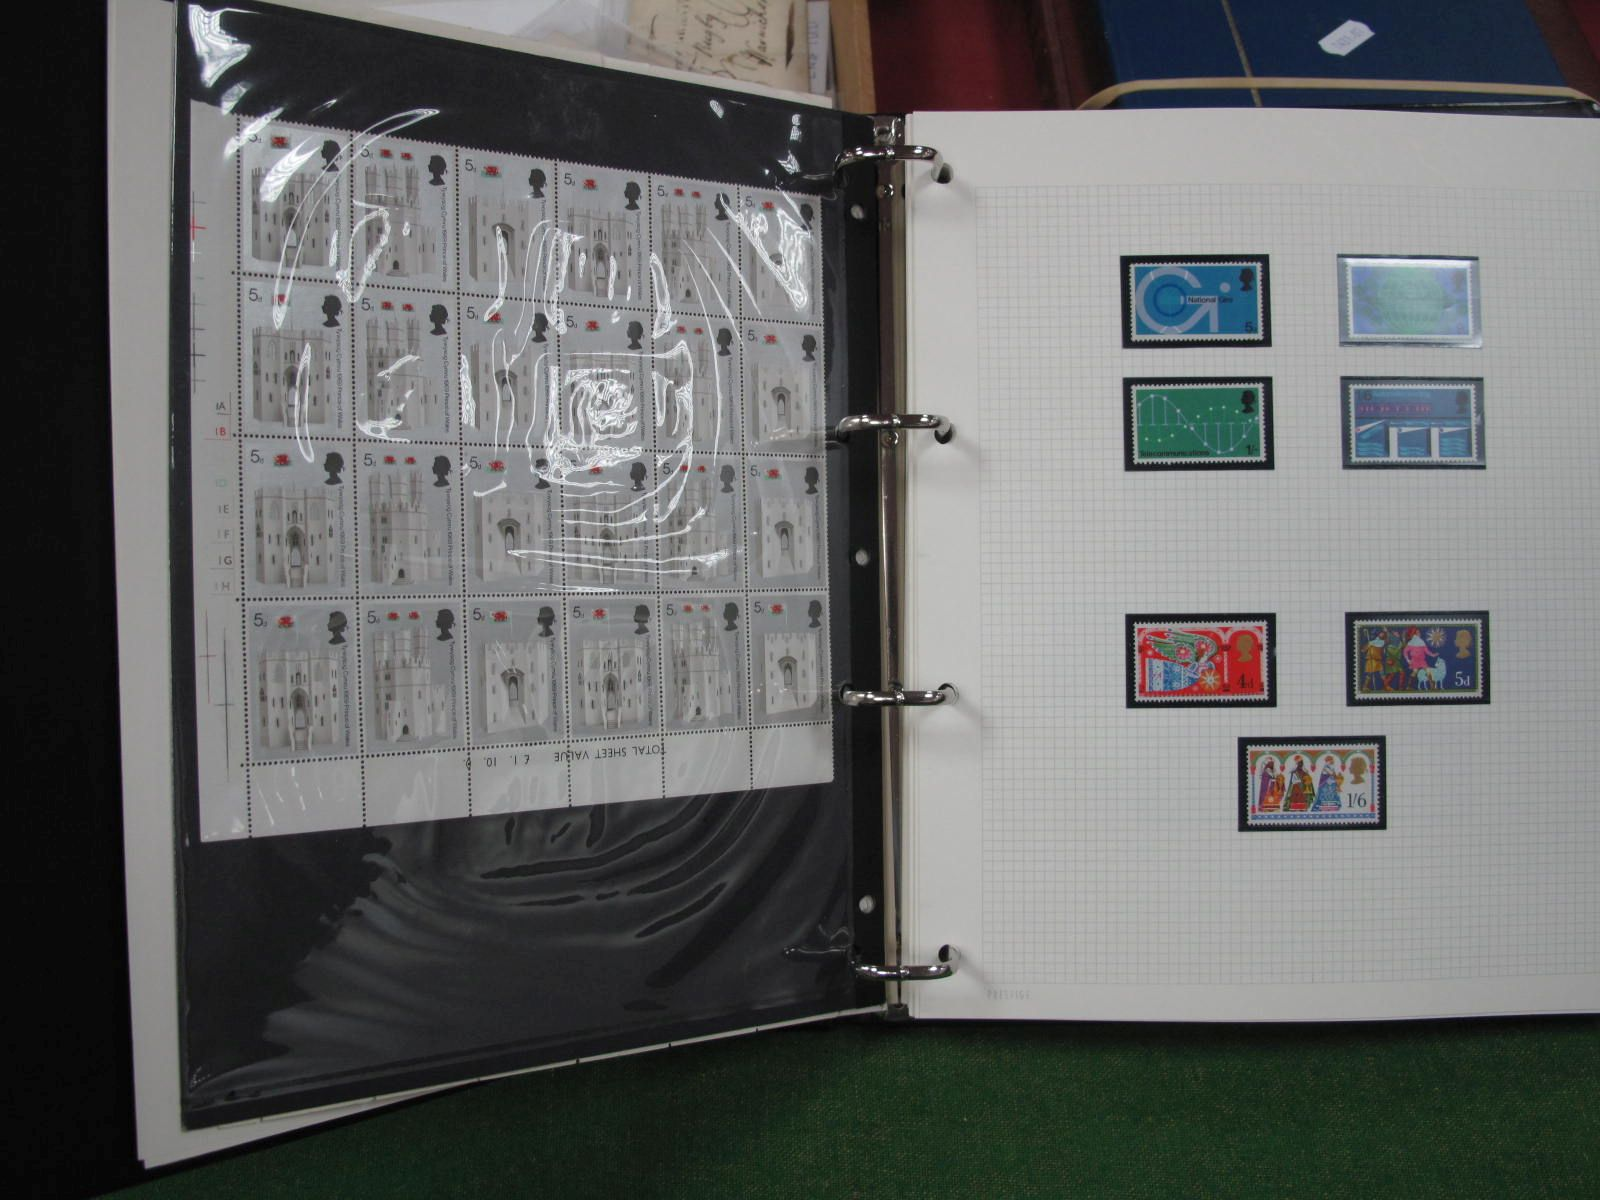 A G.B Collection of Mint Commemorative Stamps, from 1953 Coronation to 1985 Christmas, looks to be